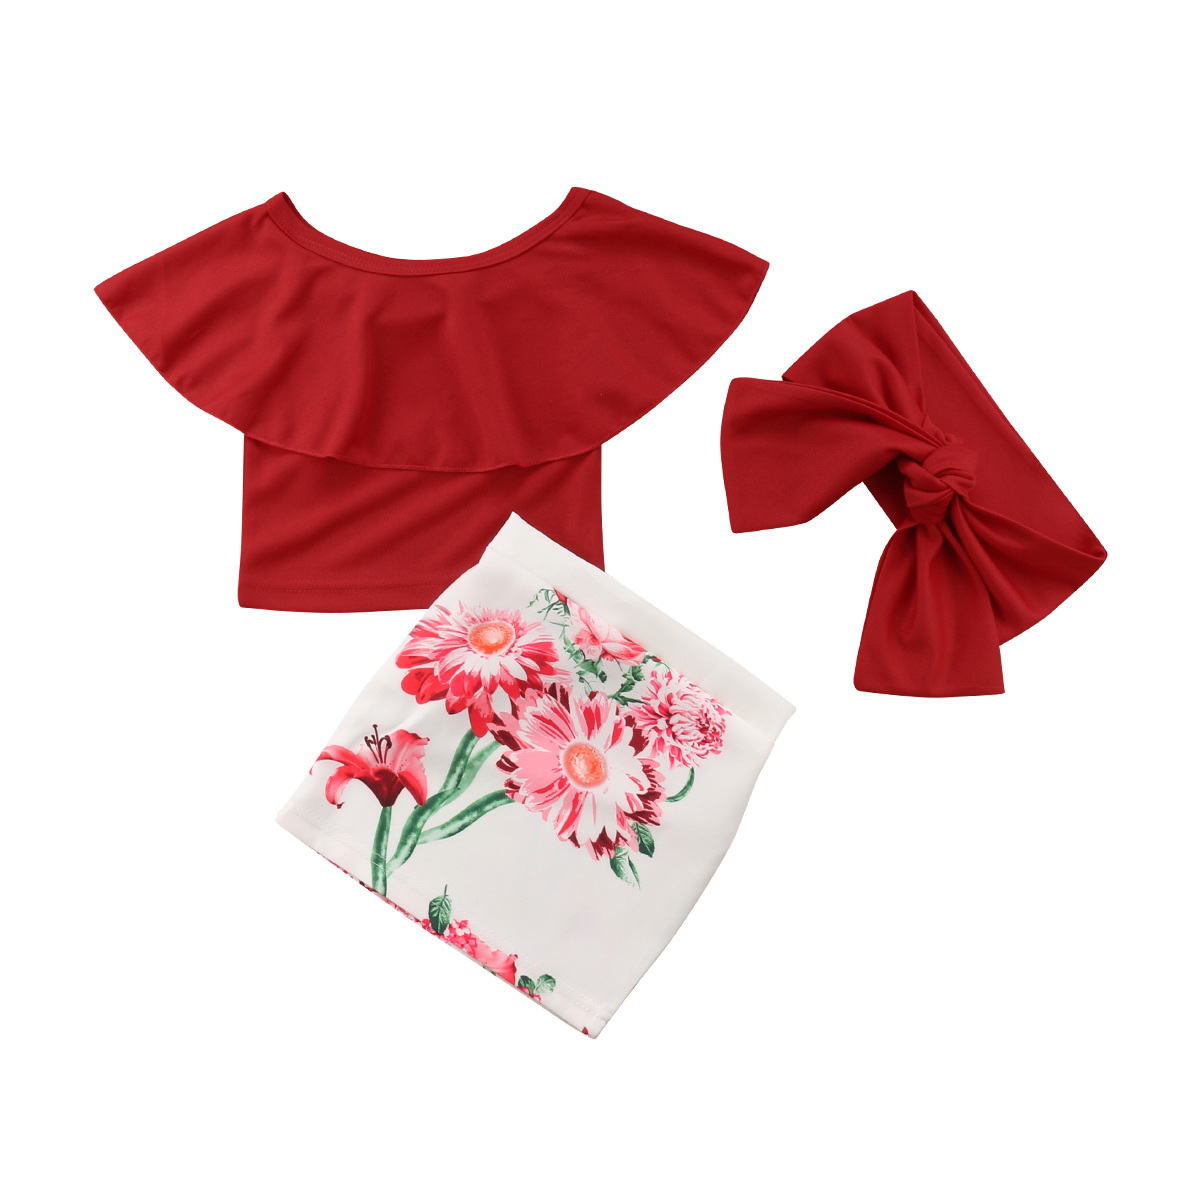 Pudcoco Kid Baby Girl Flower Clothing Set Summer Off Shoulder Tops + Floral Skirt +Headband Outfits Children Clothes